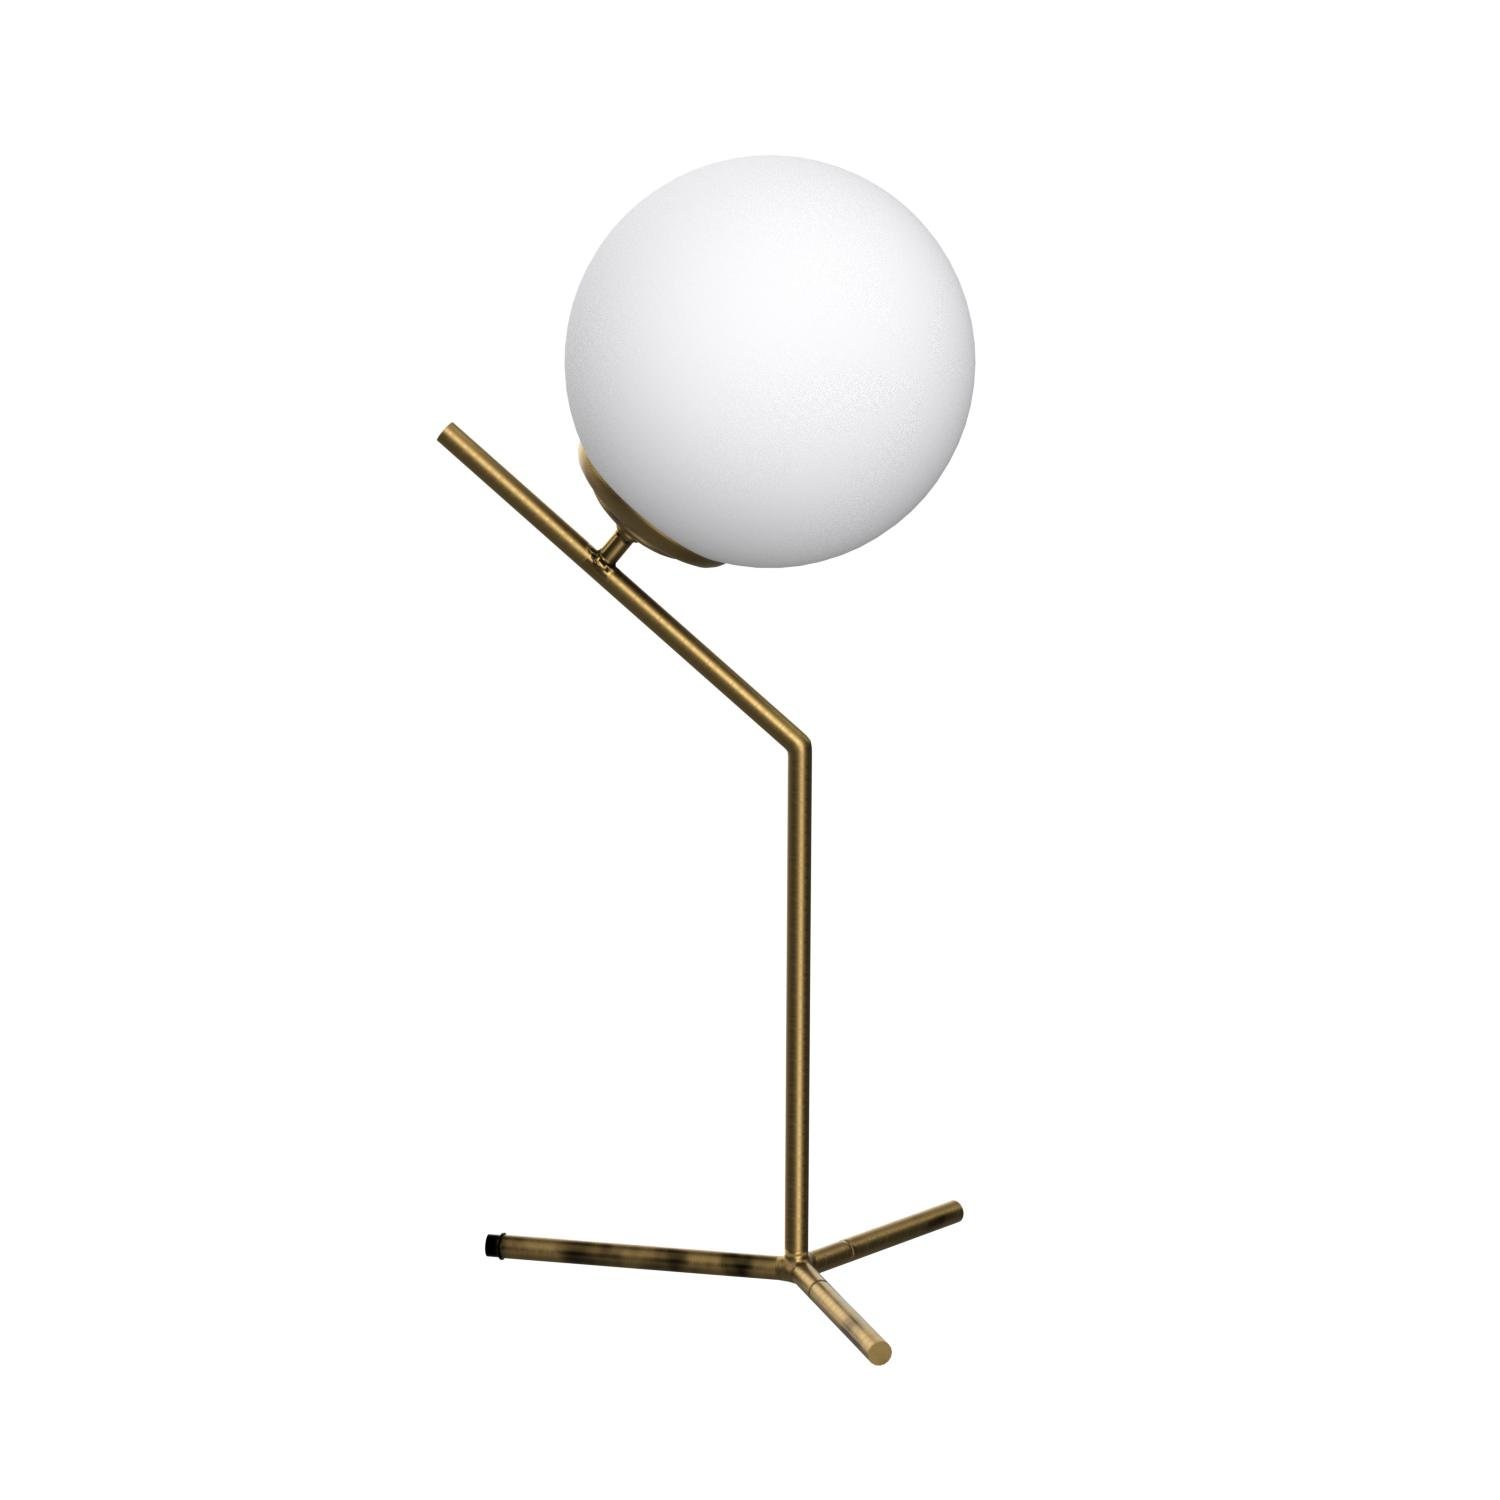 Rivet Glass Ball and Angled Metal Table Lamp with Bulb, 21.5''H, Brass by Rivet (Image #7)